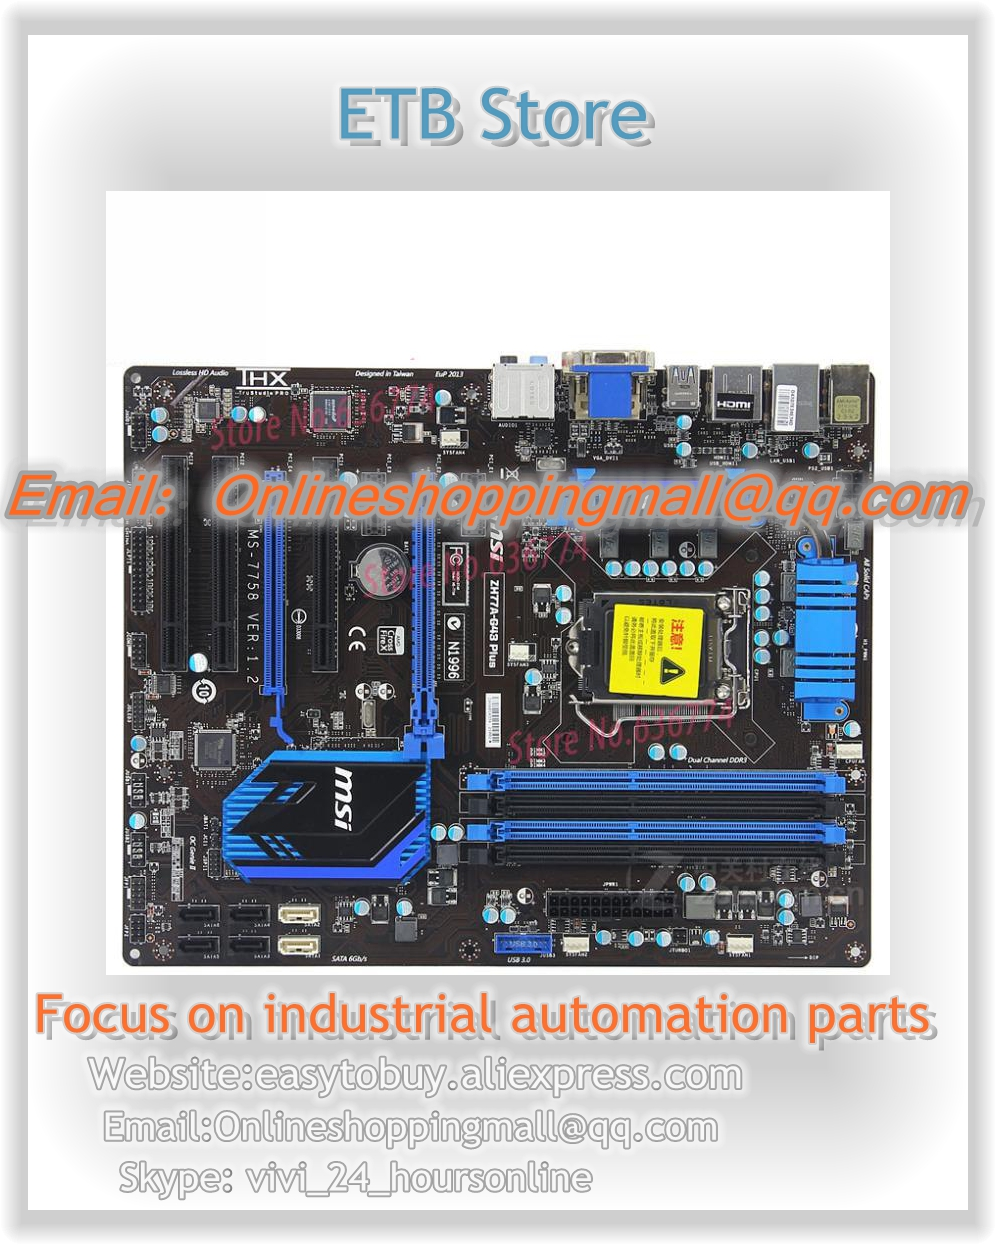 zh77a g43 Plus h77 Motherboard lga1155 LGA 1155 DDR3 Heatpipe I3 I5 I7 CPU 32GB USB3